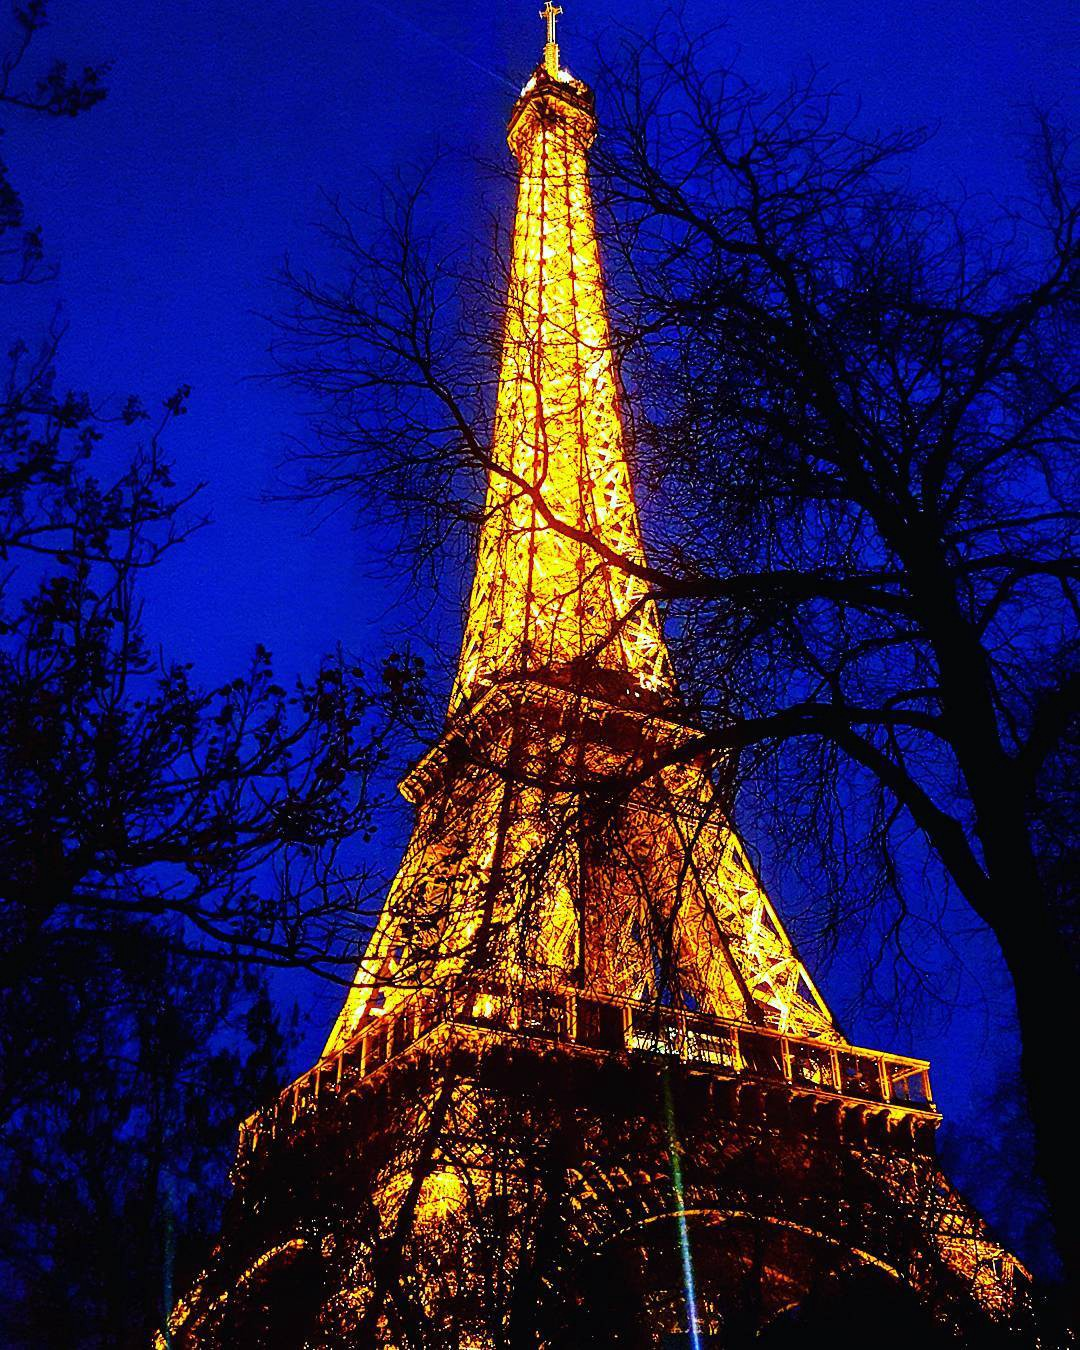 Well, excuse me while I glow away in the Twilight! #eiffeltower #eiffel #france #paris #travel #travelgram #traveling #travelphotography #travelling #wanderlust #explore #exploreeverything #tourism #toureiffel #tourist #europe #world #architecture #beautiful #twilight #sunset #lights #amazing #mojo #blog #instadaily #instagood #instamood #photooftheday